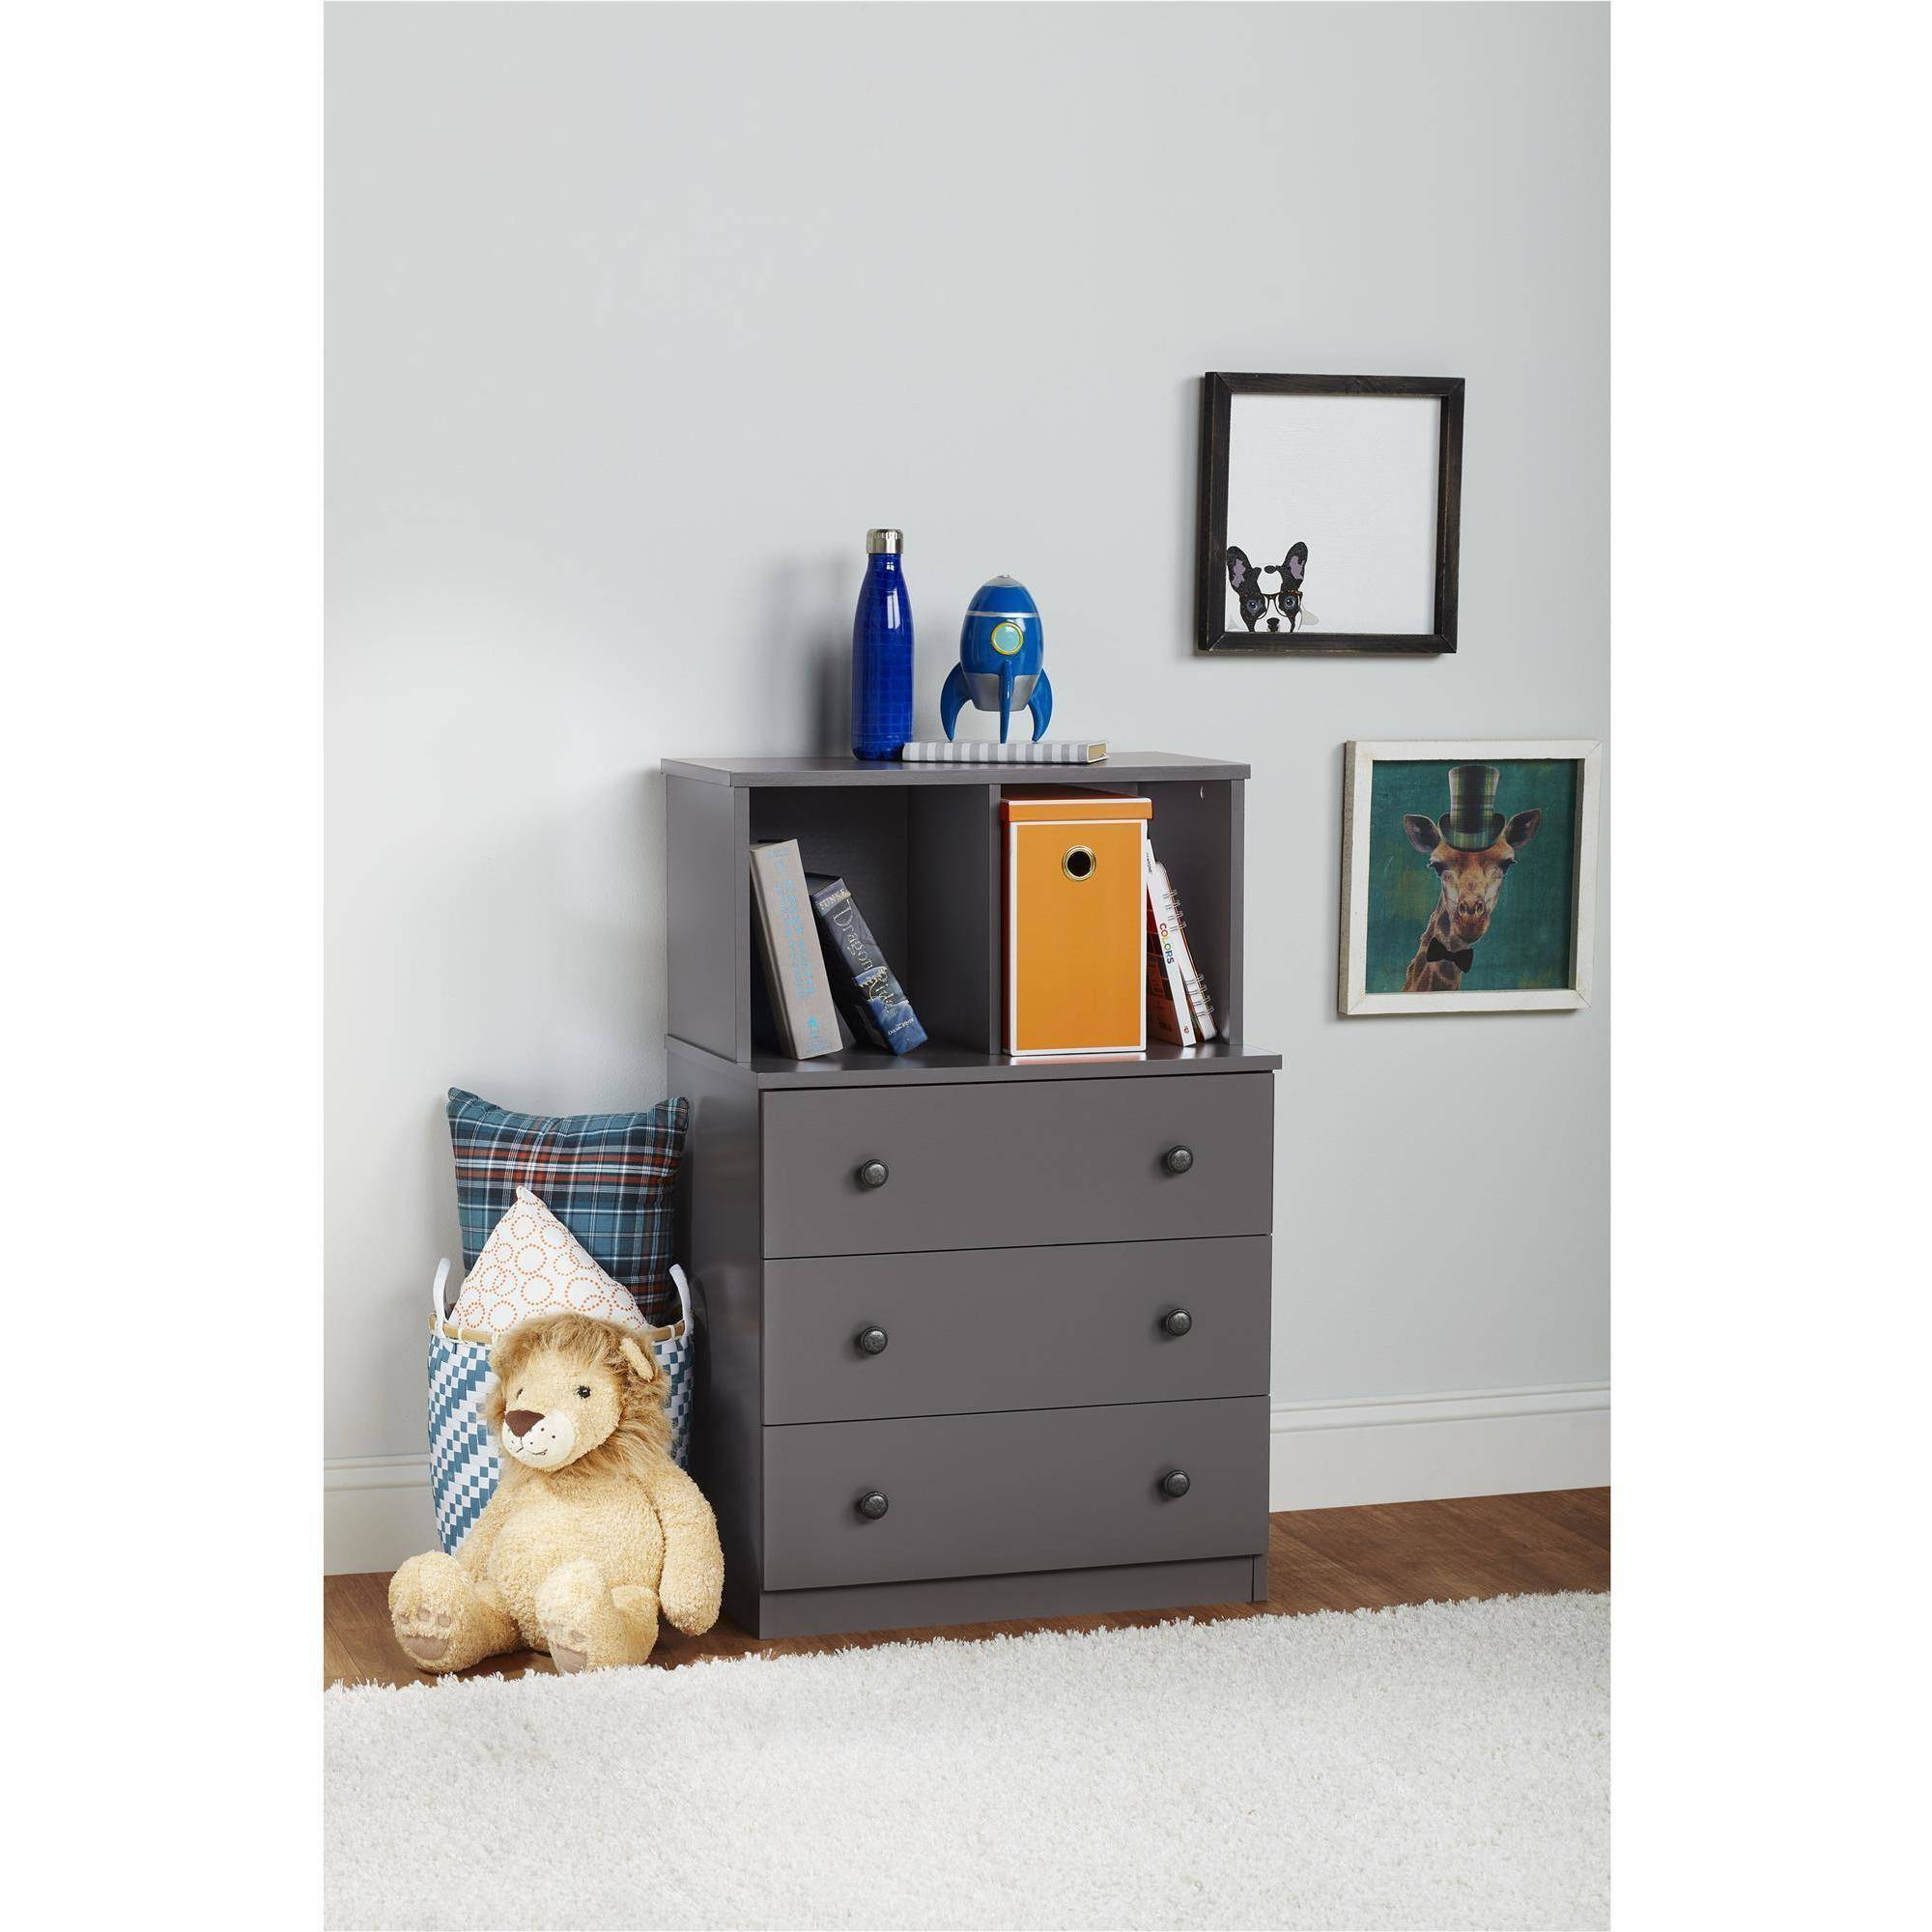 Ameriwood Home Skyler 3 Drawer Dresser with Cubbies, Multiple Colors by Ameriwood